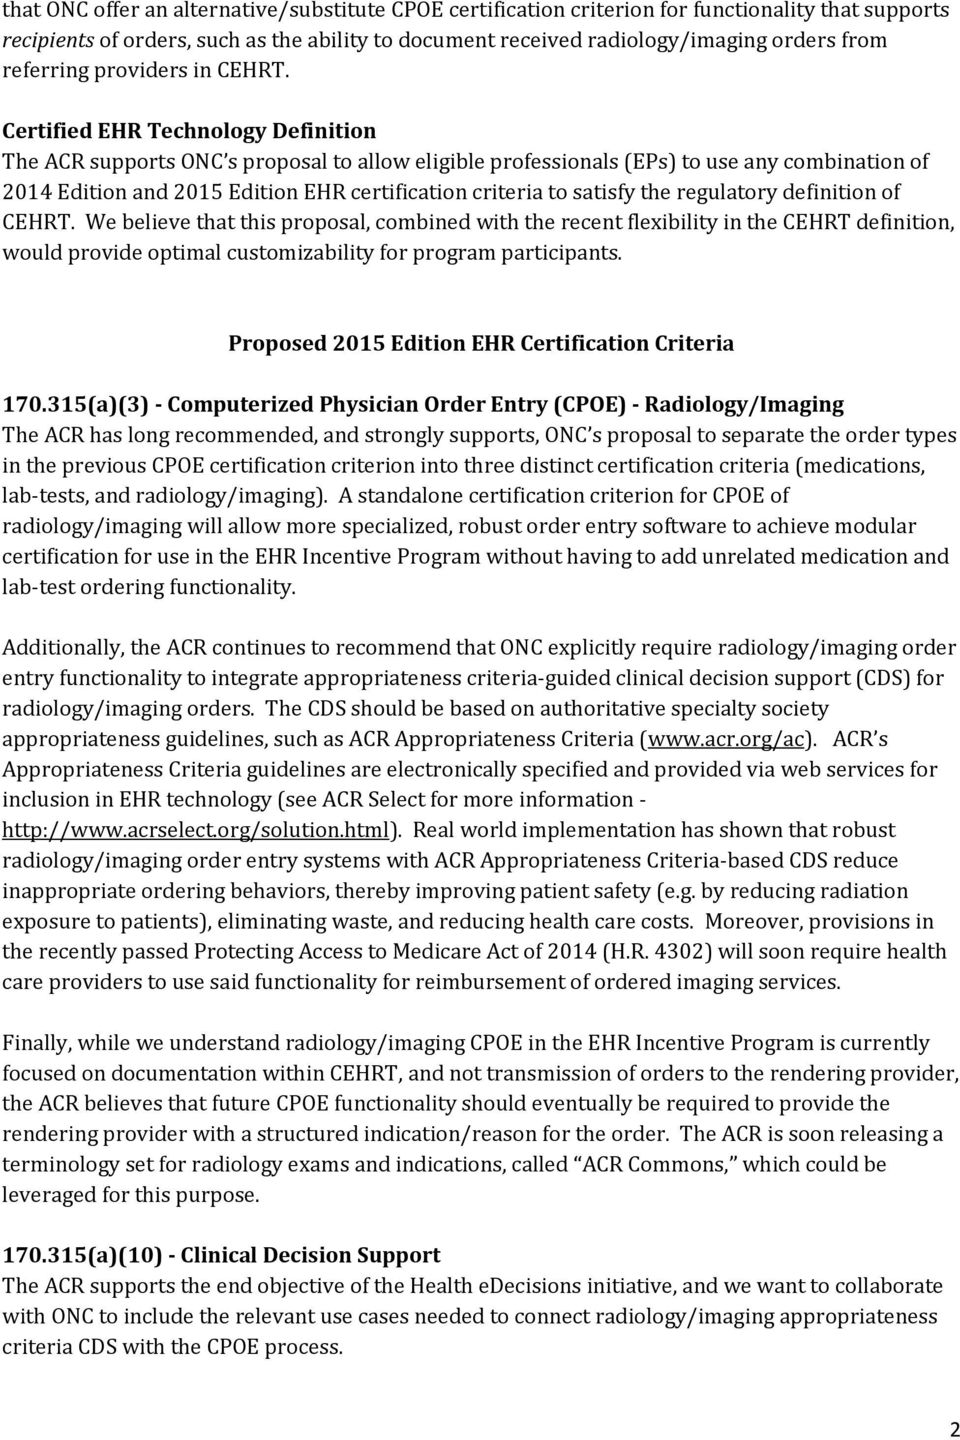 Certified EHR Technology Definition The ACR supports ONC s proposal to allow eligible professionals (EPs) to use any combination of 2014 Edition and 2015 Edition EHR certification criteria to satisfy